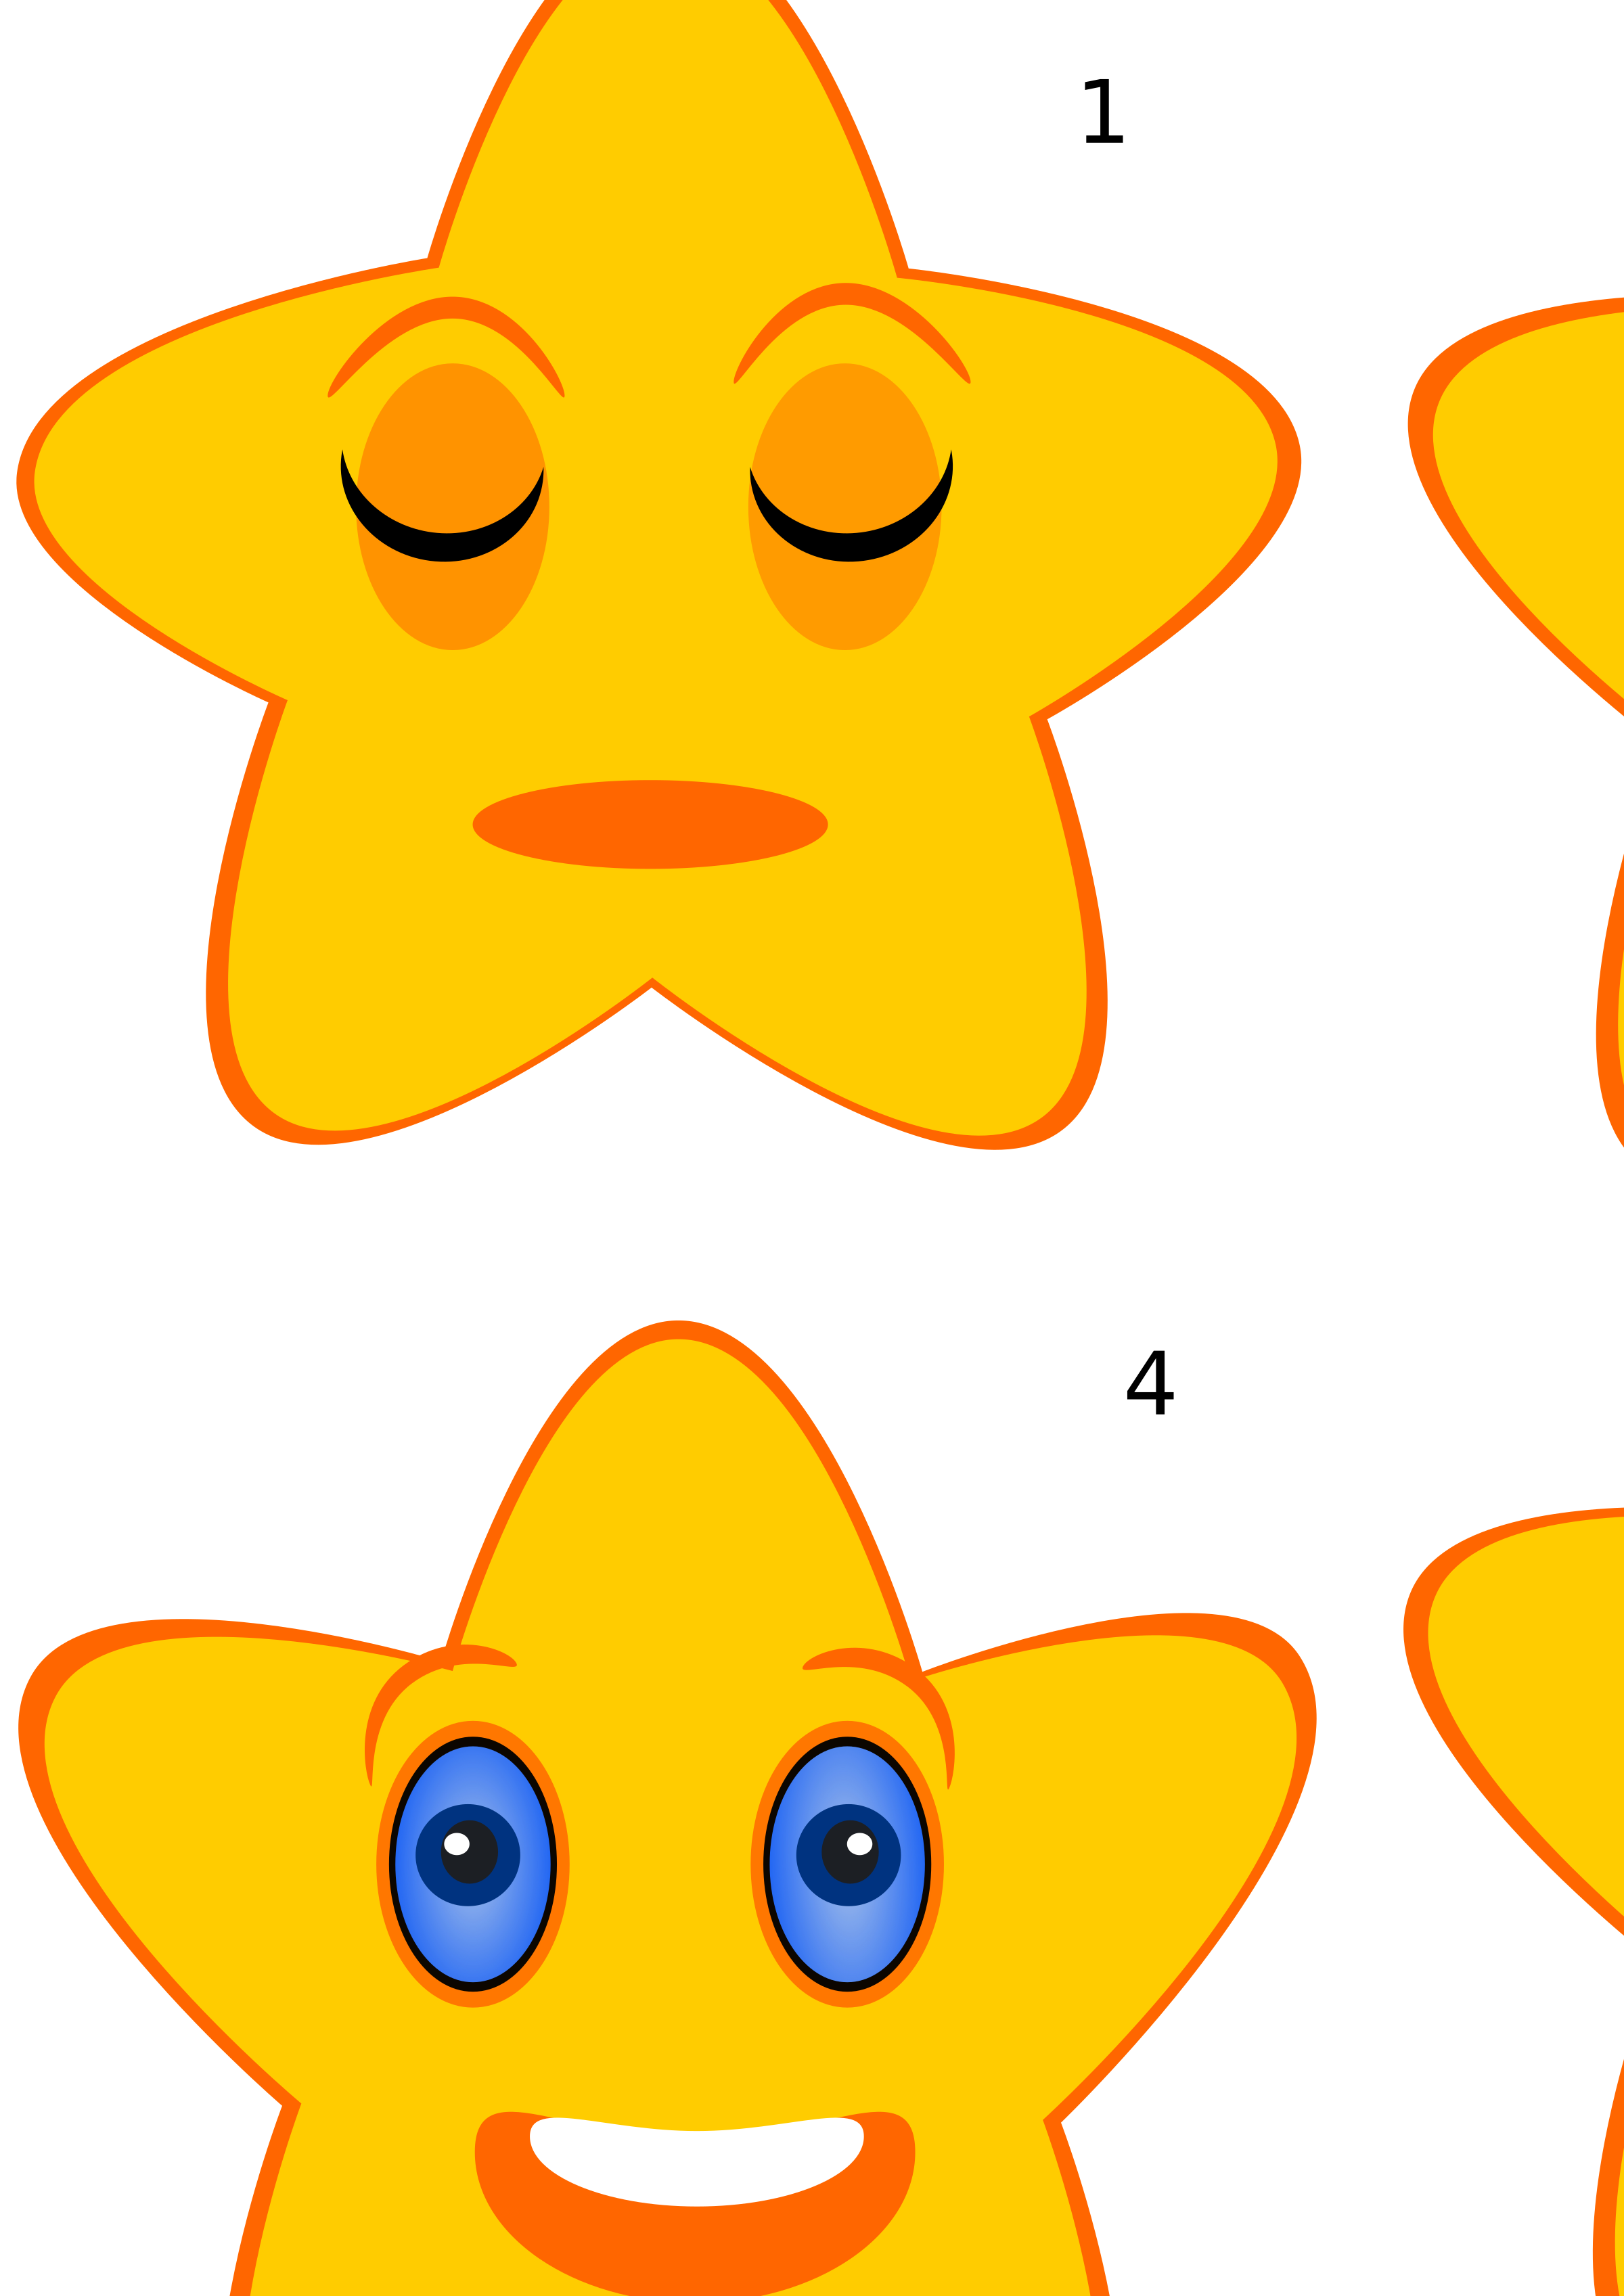 svg royalty free download Animated sleeping star big. Waking clipart gets up